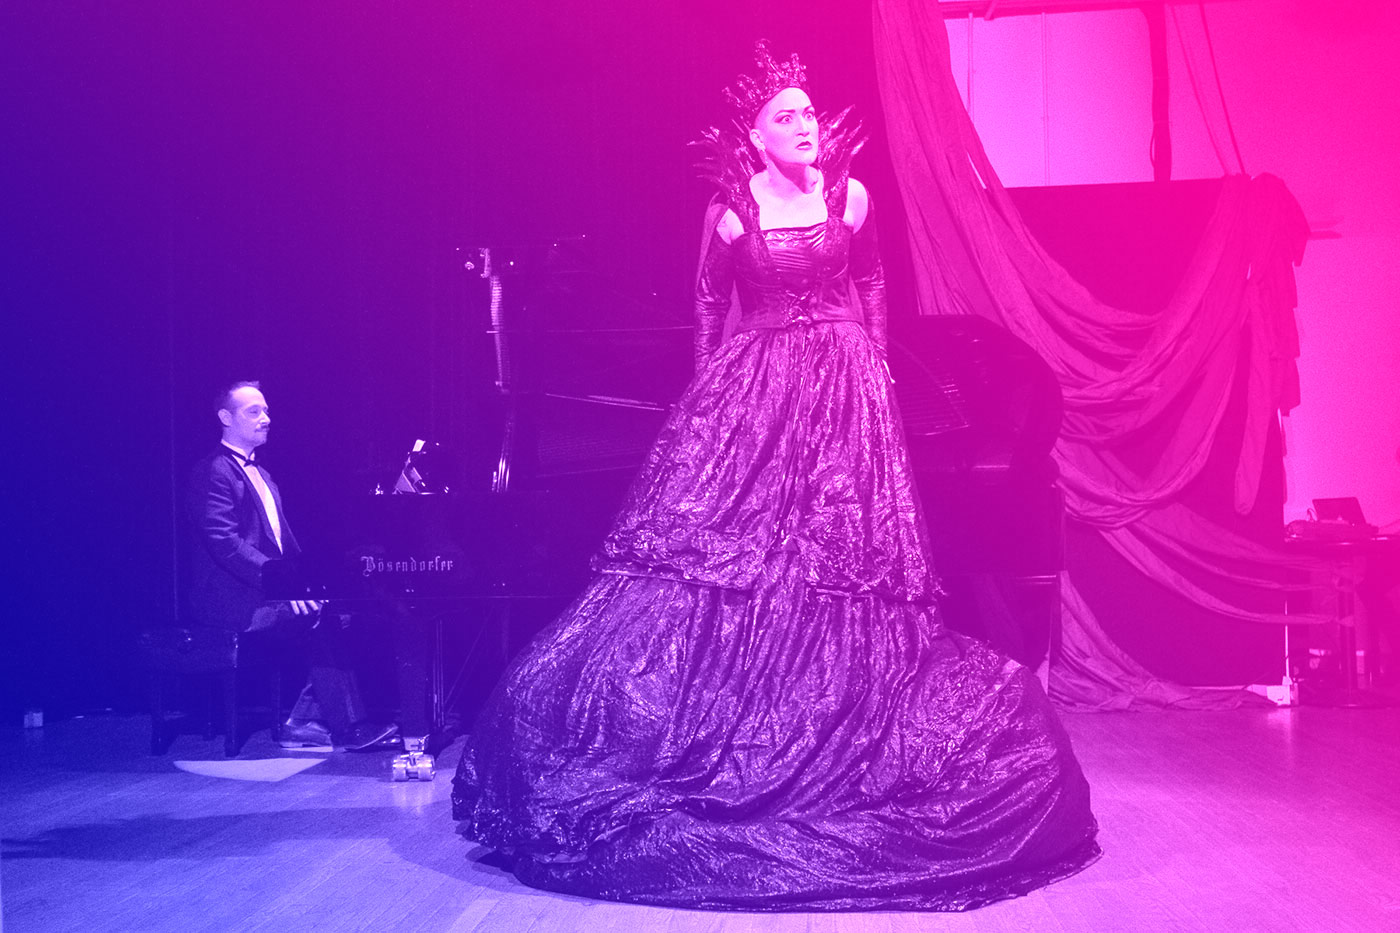 Image of opera singer and pianist with a blue/magenta gradient overlay